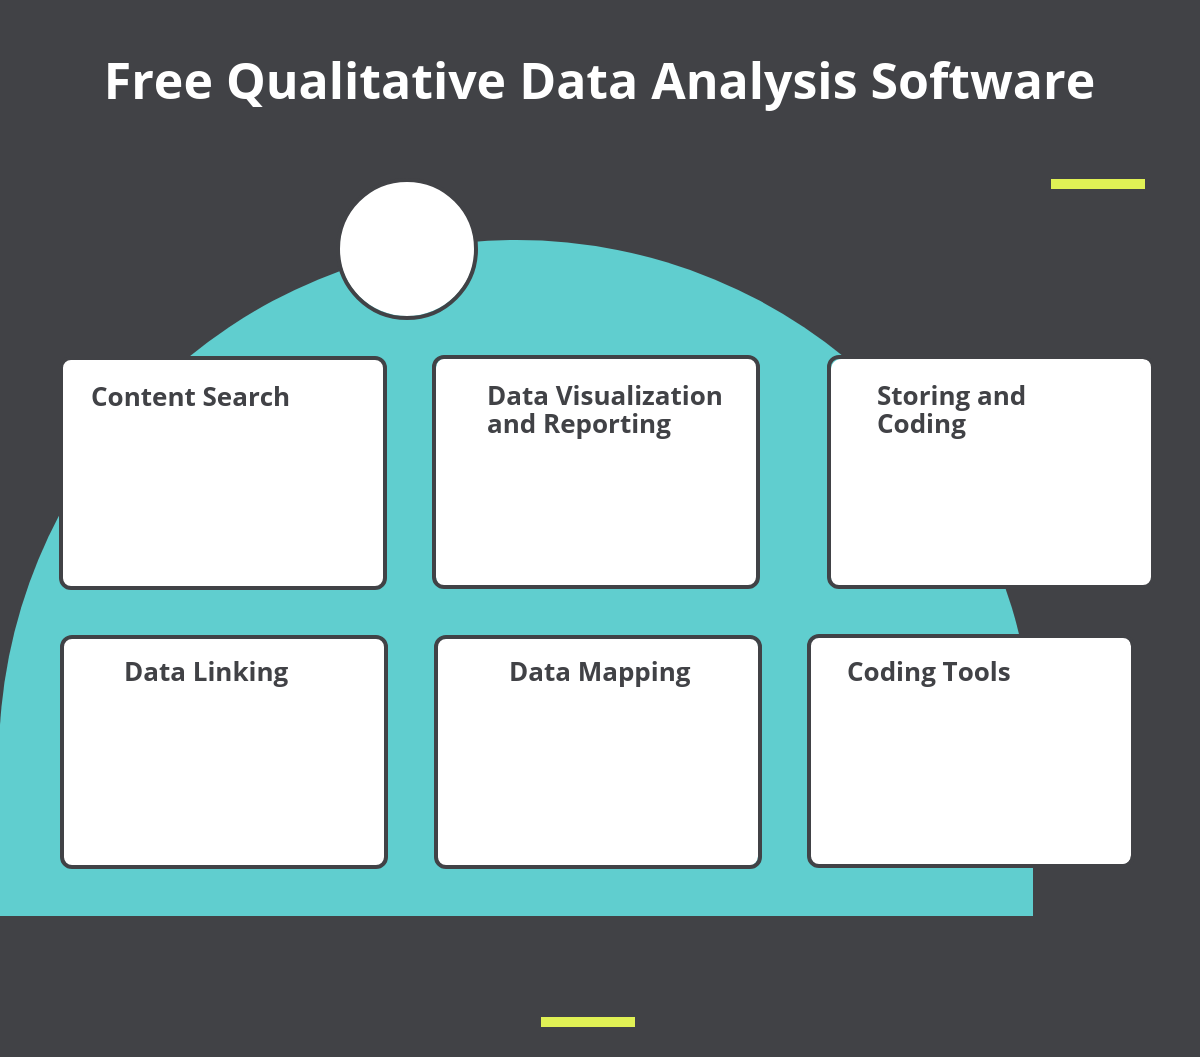 Top 19 Free Qualitative Data Analysis Software In 2020 Reviews Features Pricing Comparison Pat Research B2b Reviews Buying Guides Best Practices Data Analysis Software Data Analysis Text Analysis